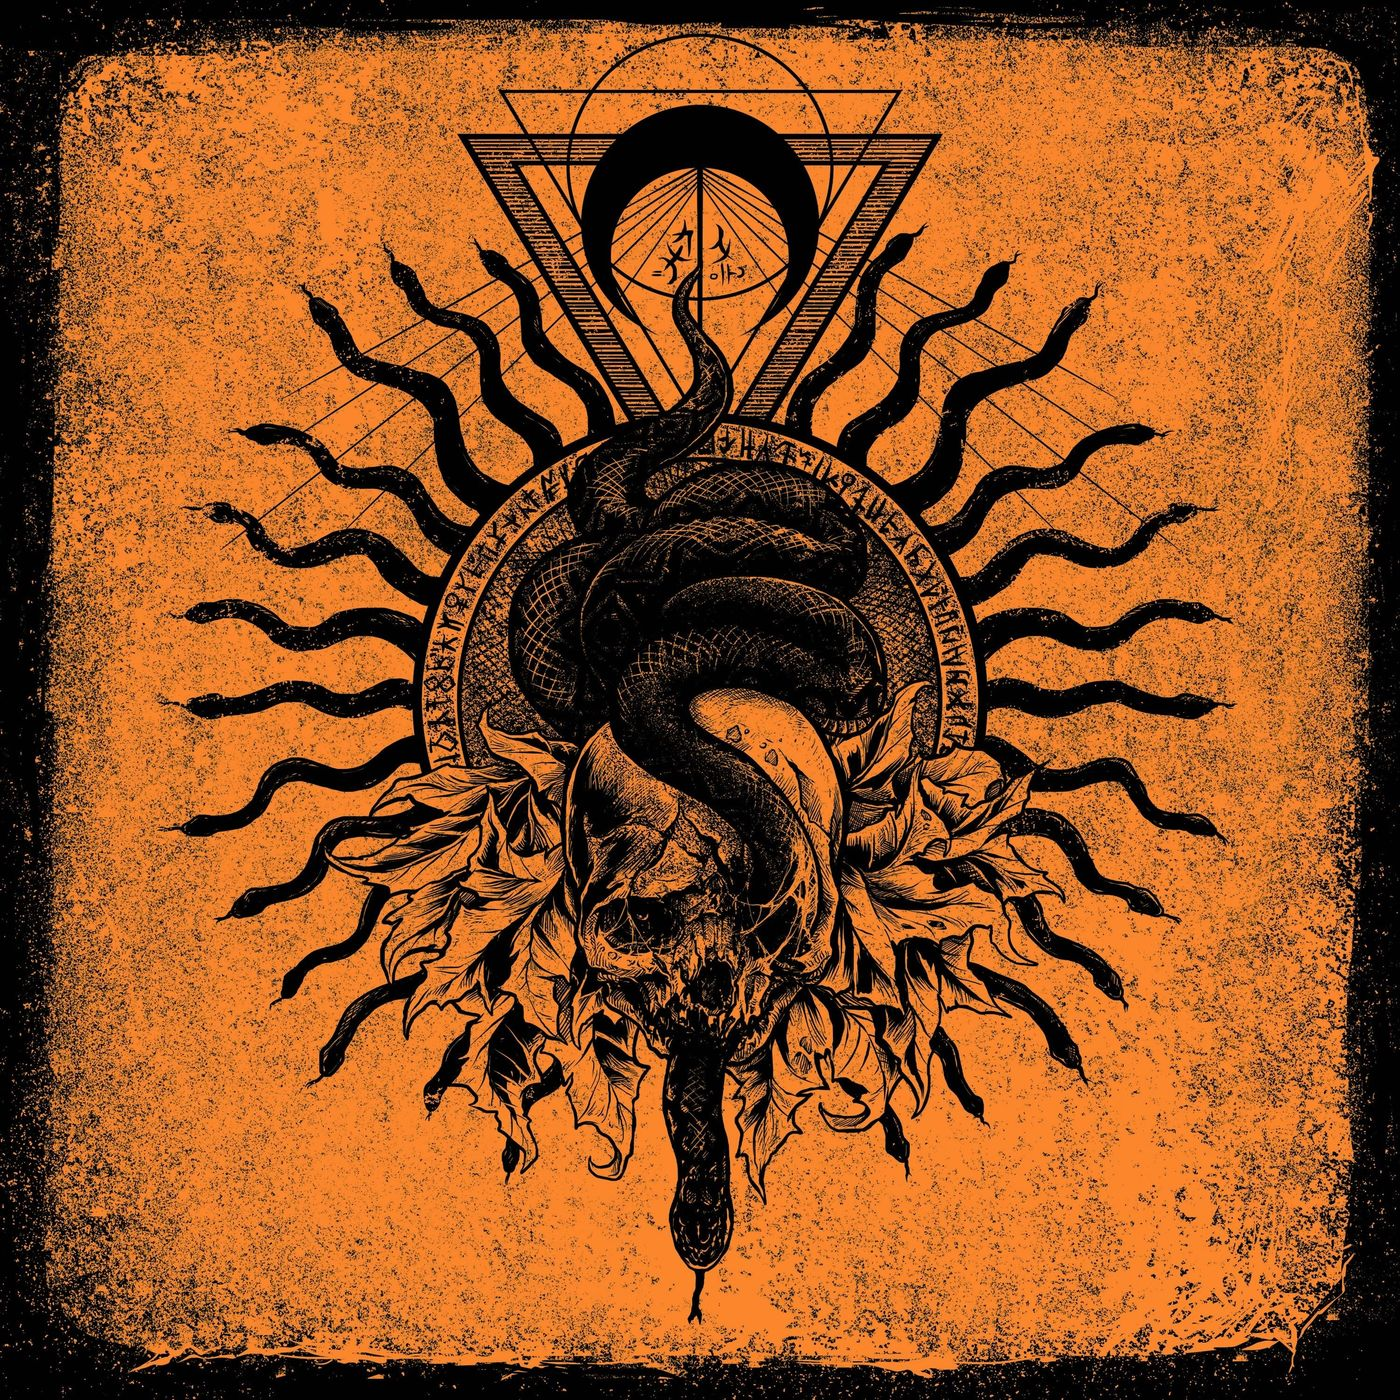 The Wandering - The Serpent Sun [single] (2019)